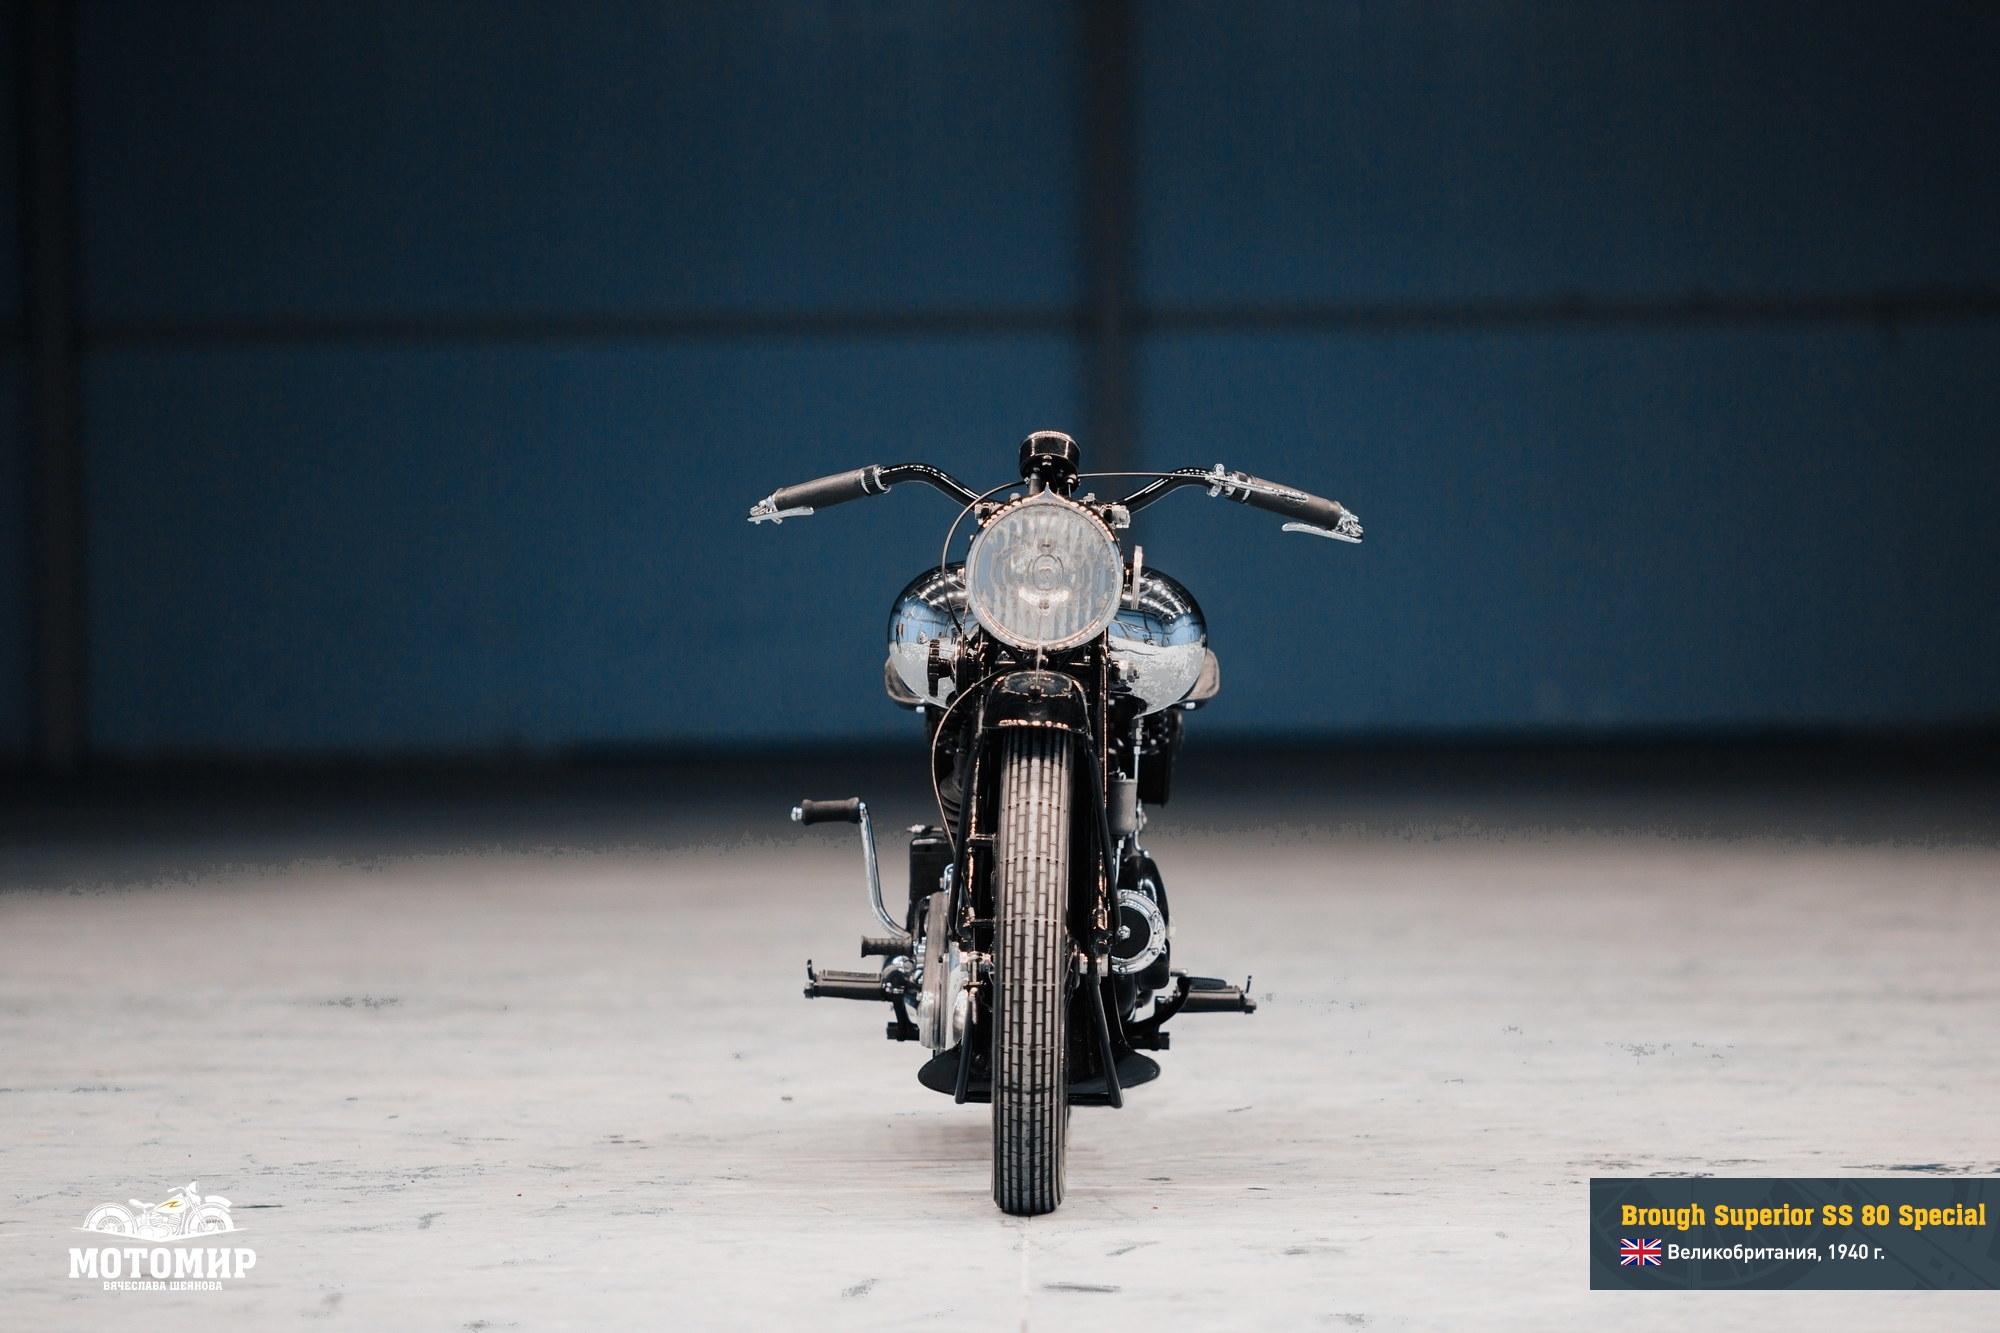 brough-superior-ss-80-201502-web-07